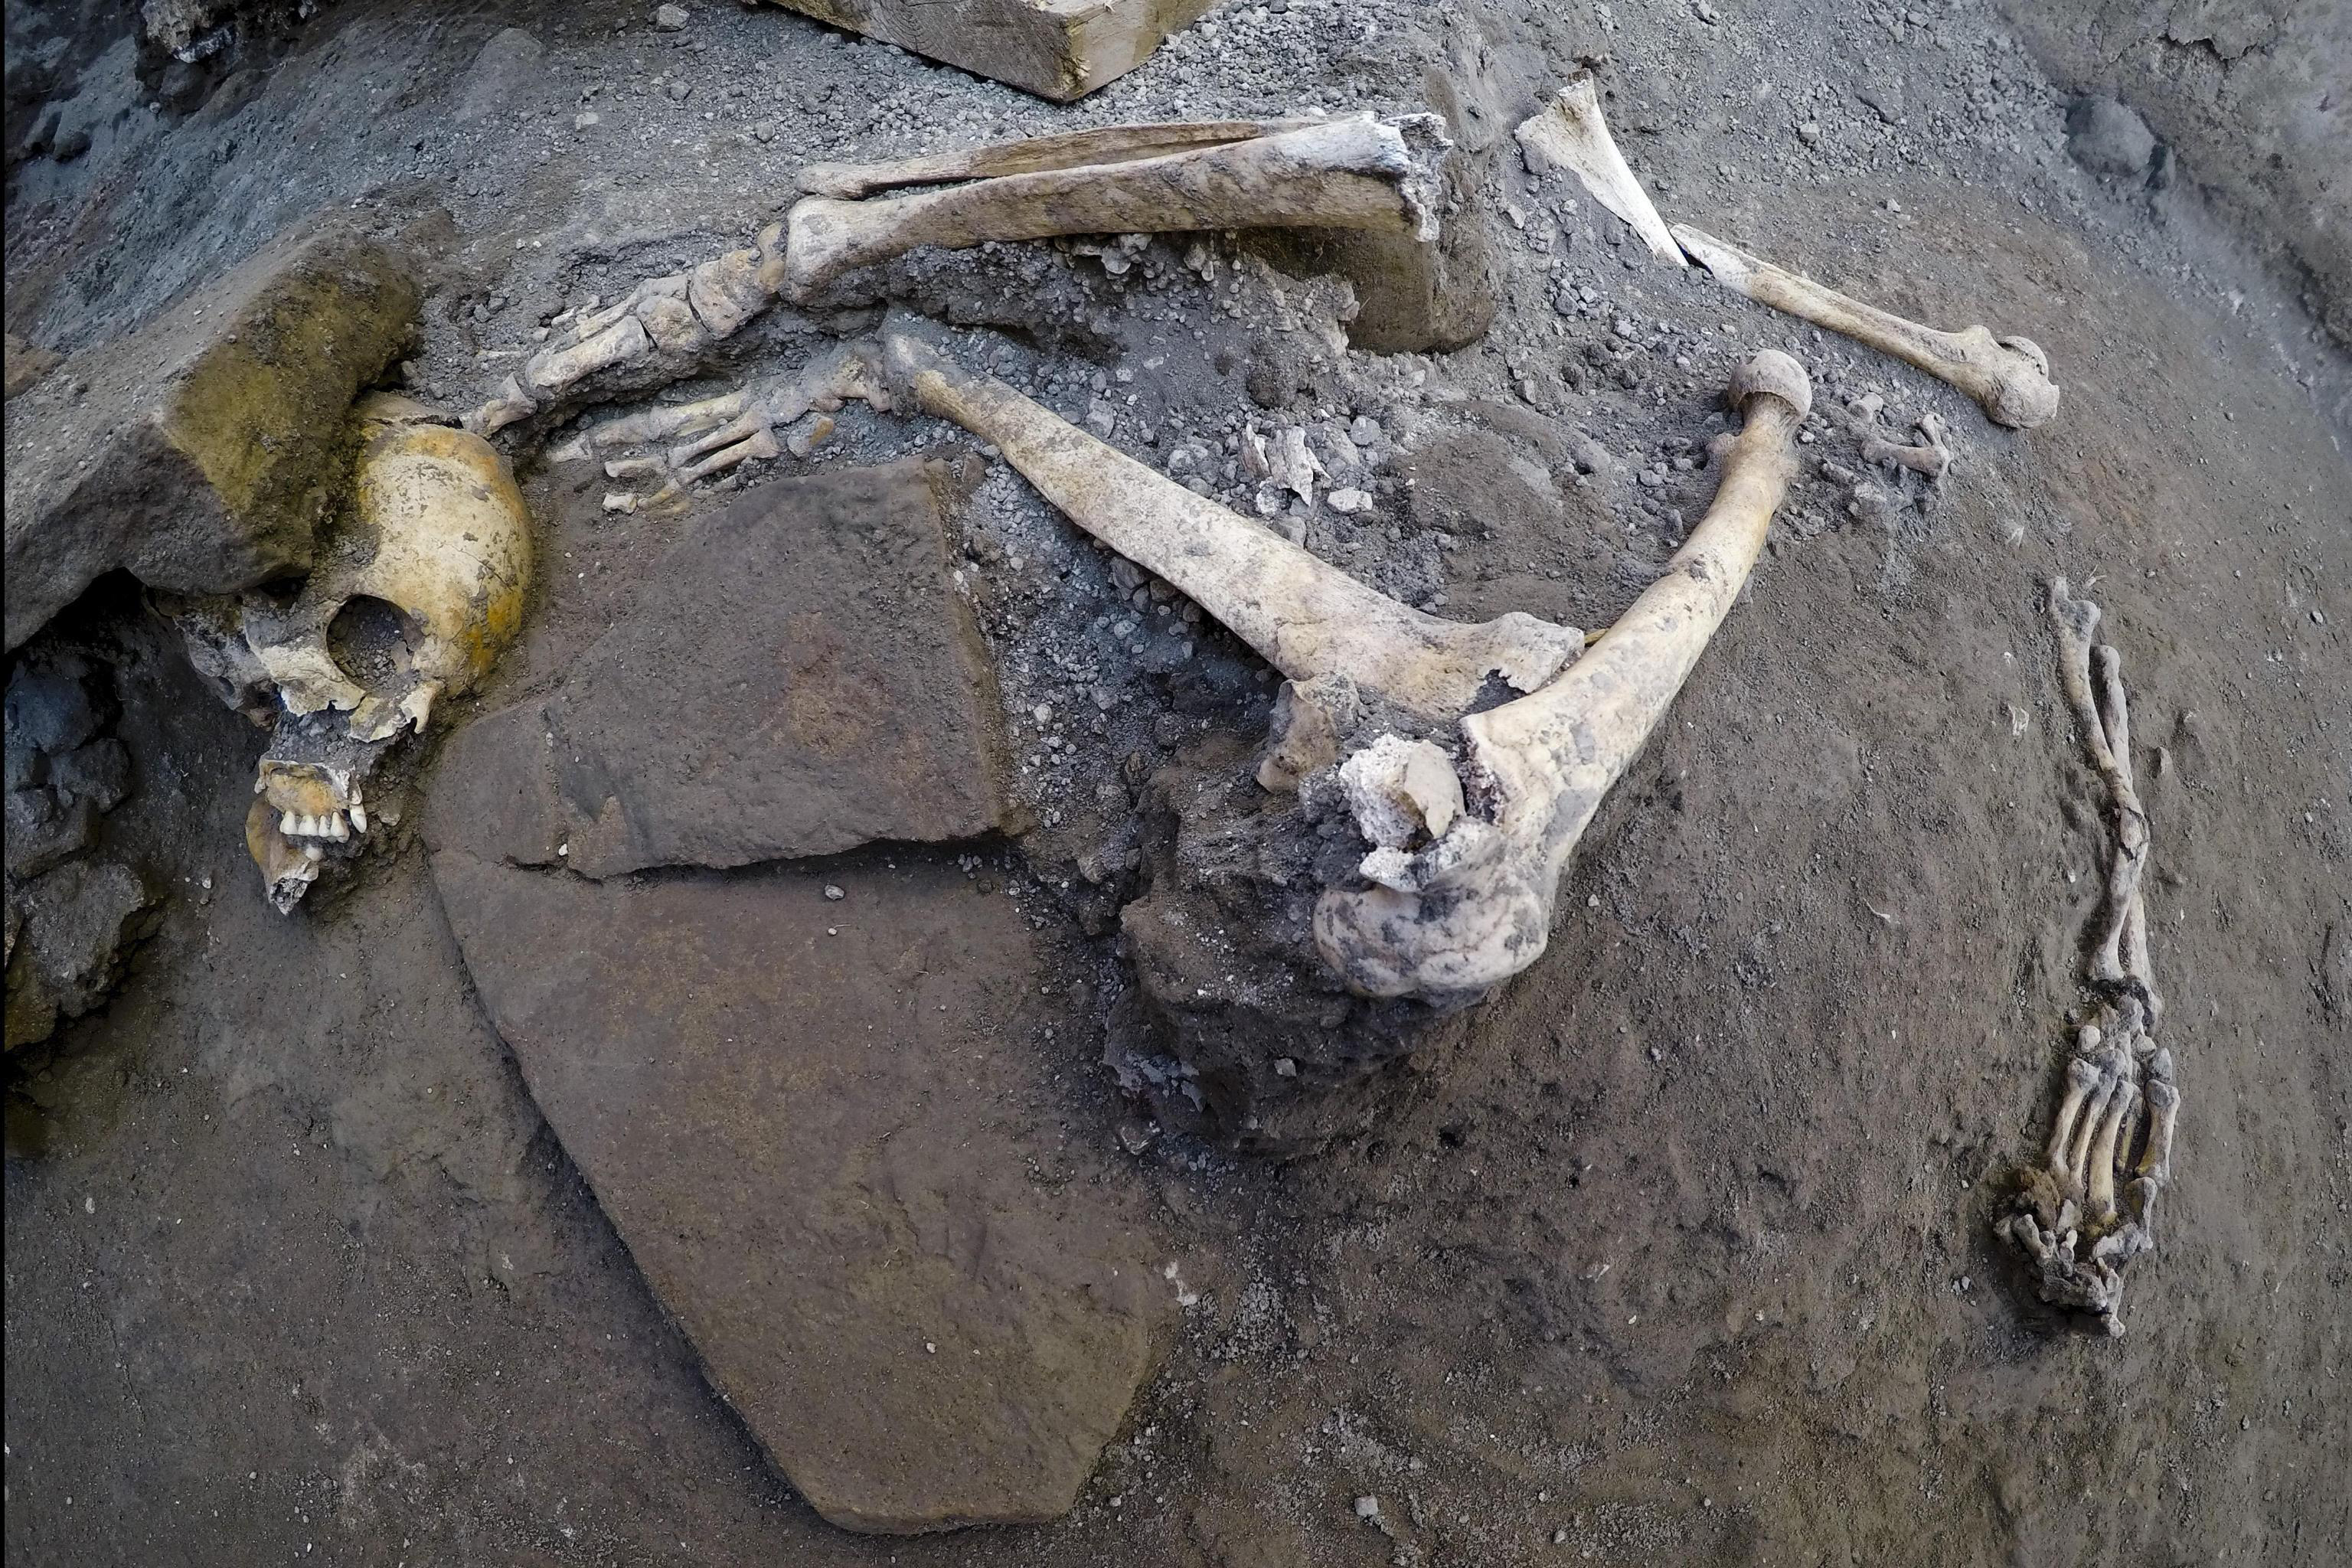 Gruesome Pompeii discovery: Ancient city reveals grisly secret